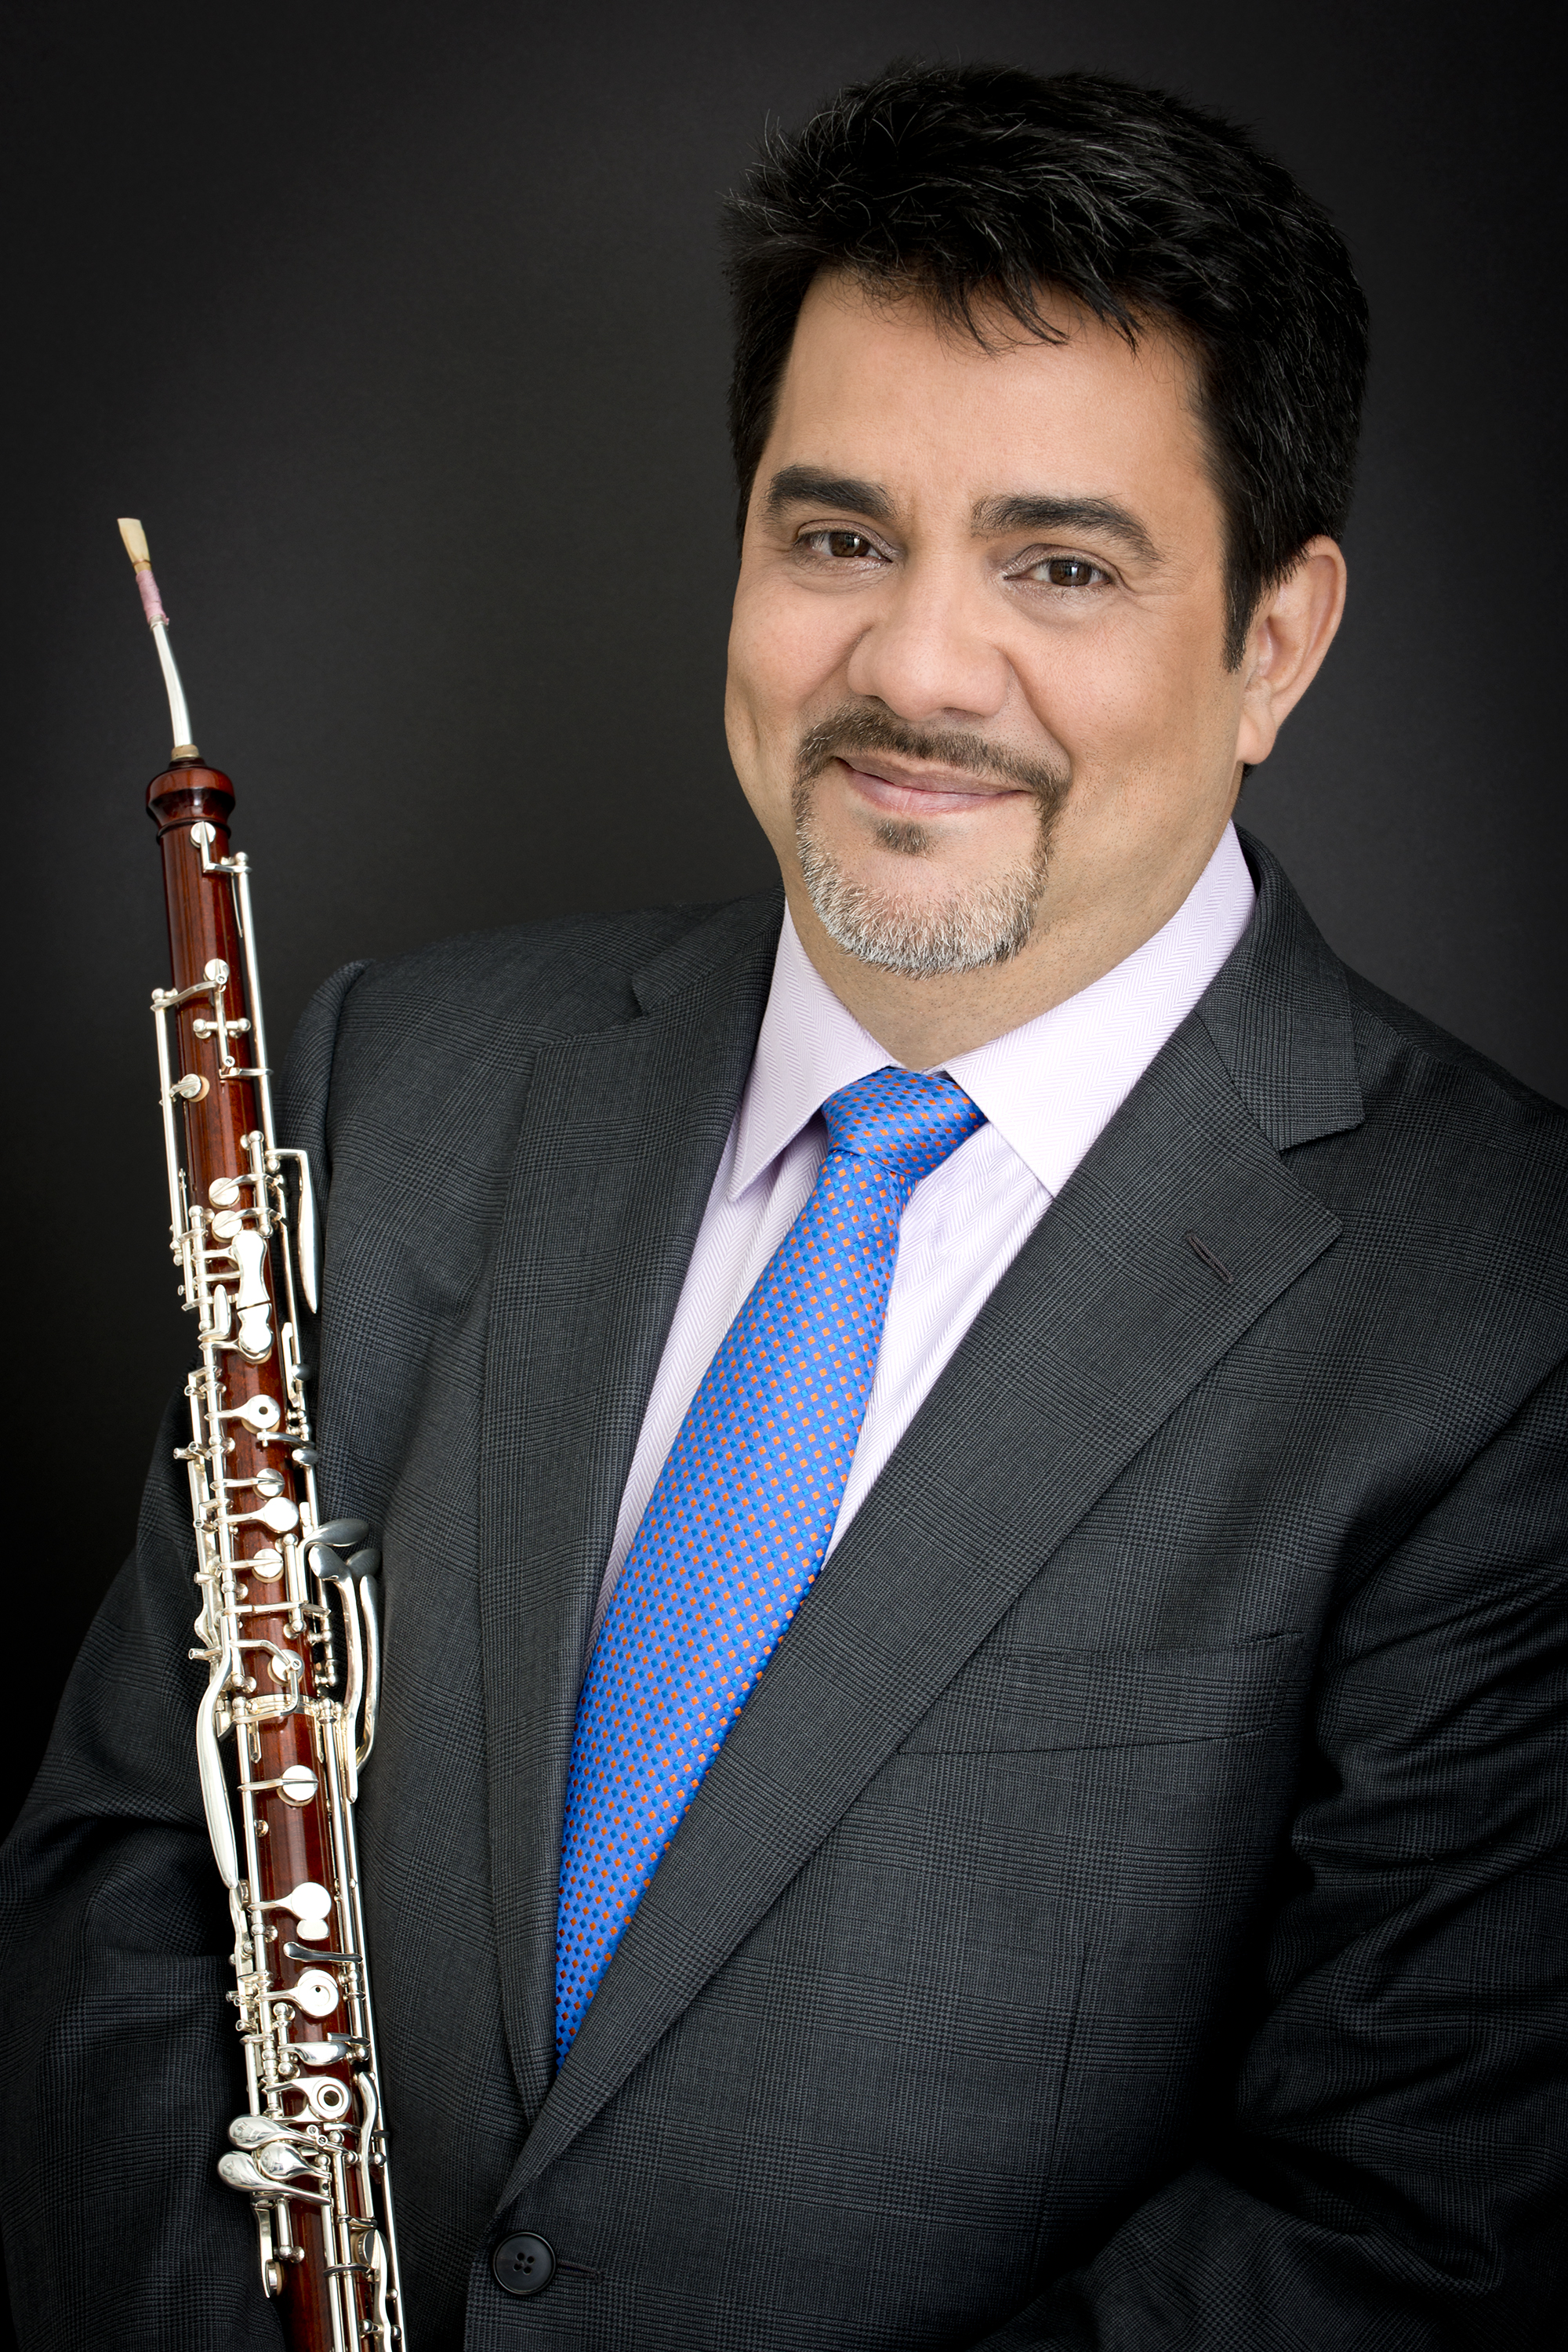 Current position(s): Solo English Horn with Orchestra of Metropolitan Opera  since 2005;